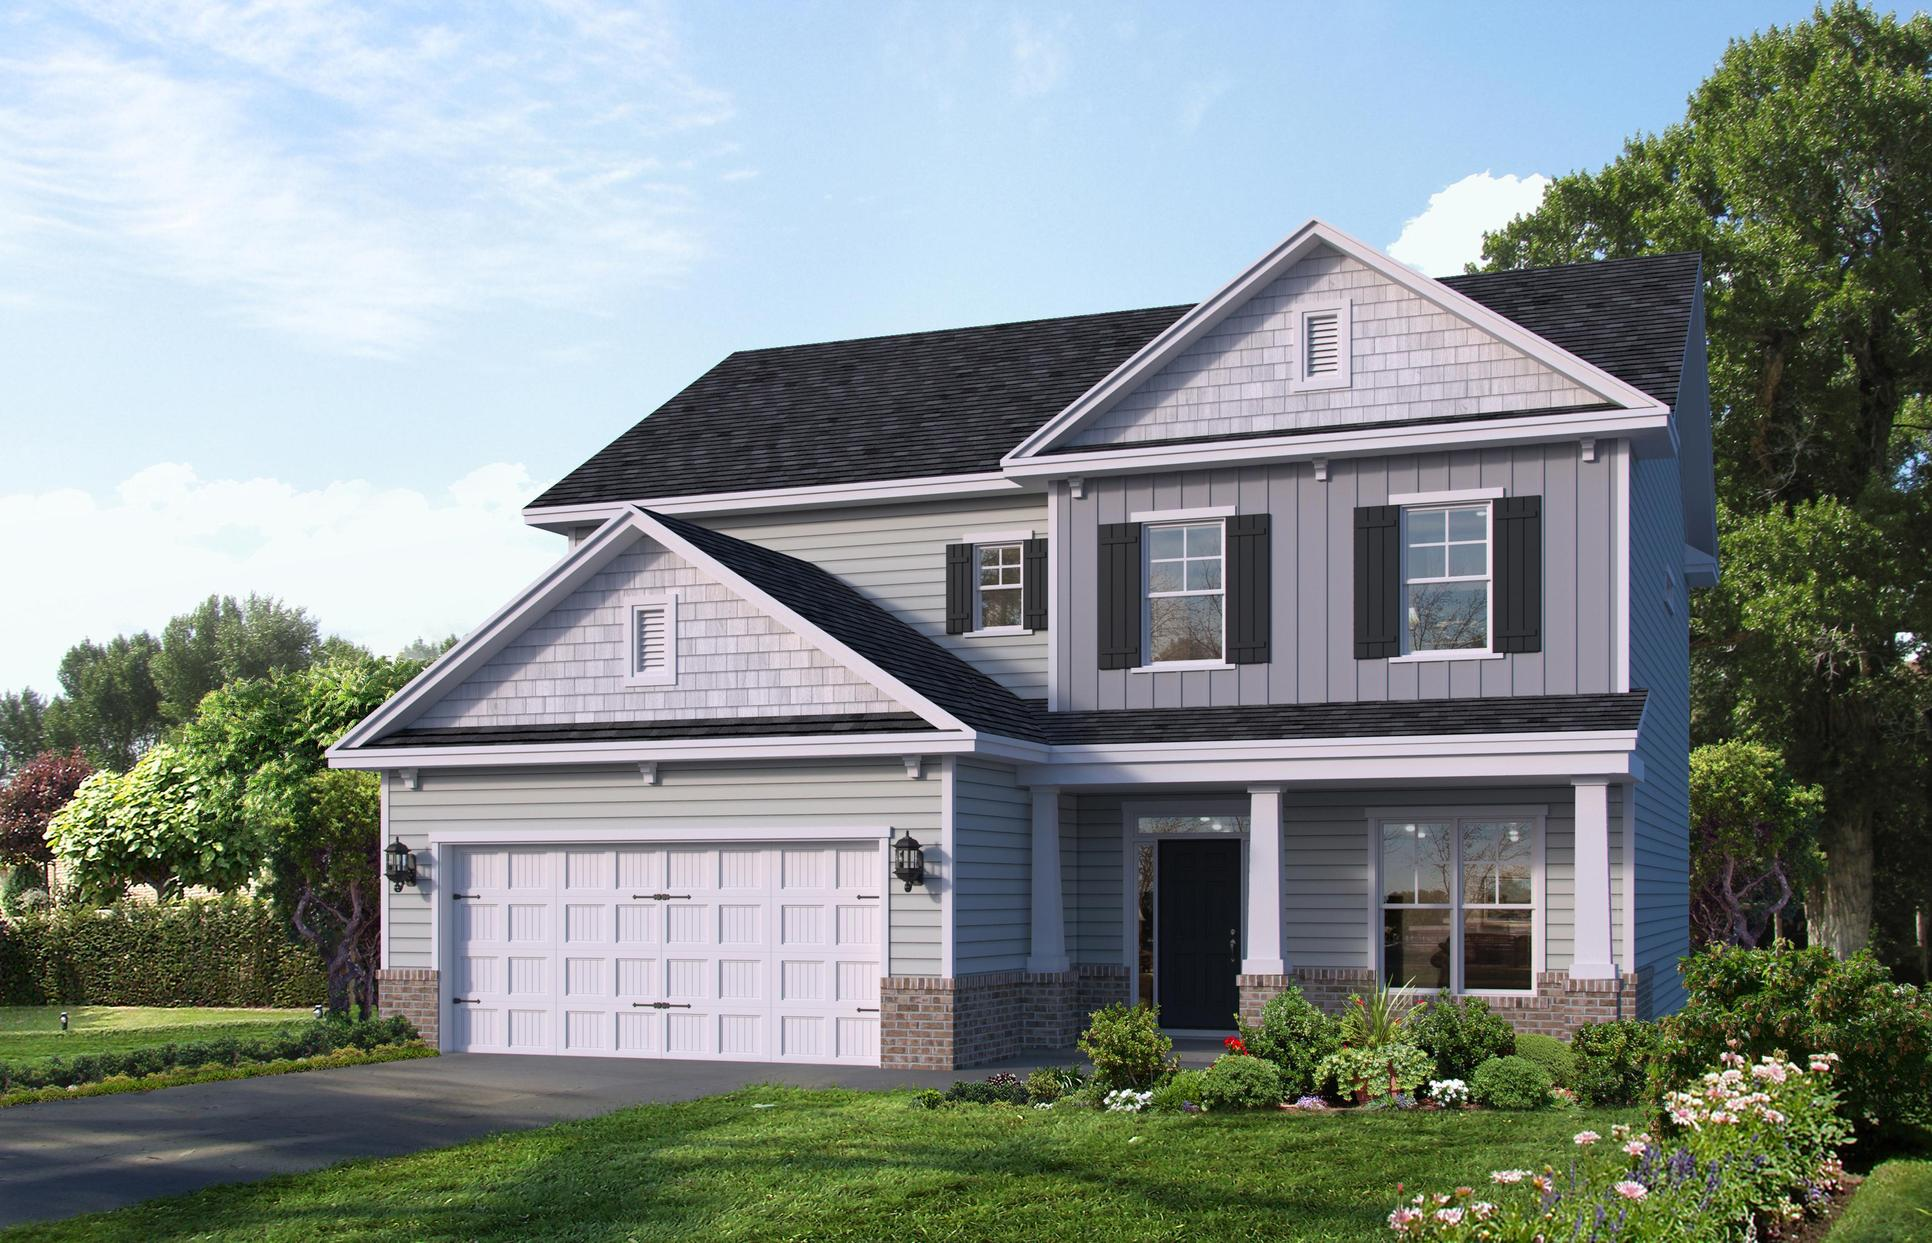 Dawson elevation C/LE:Le elevation is available in select Landmark 24 communities